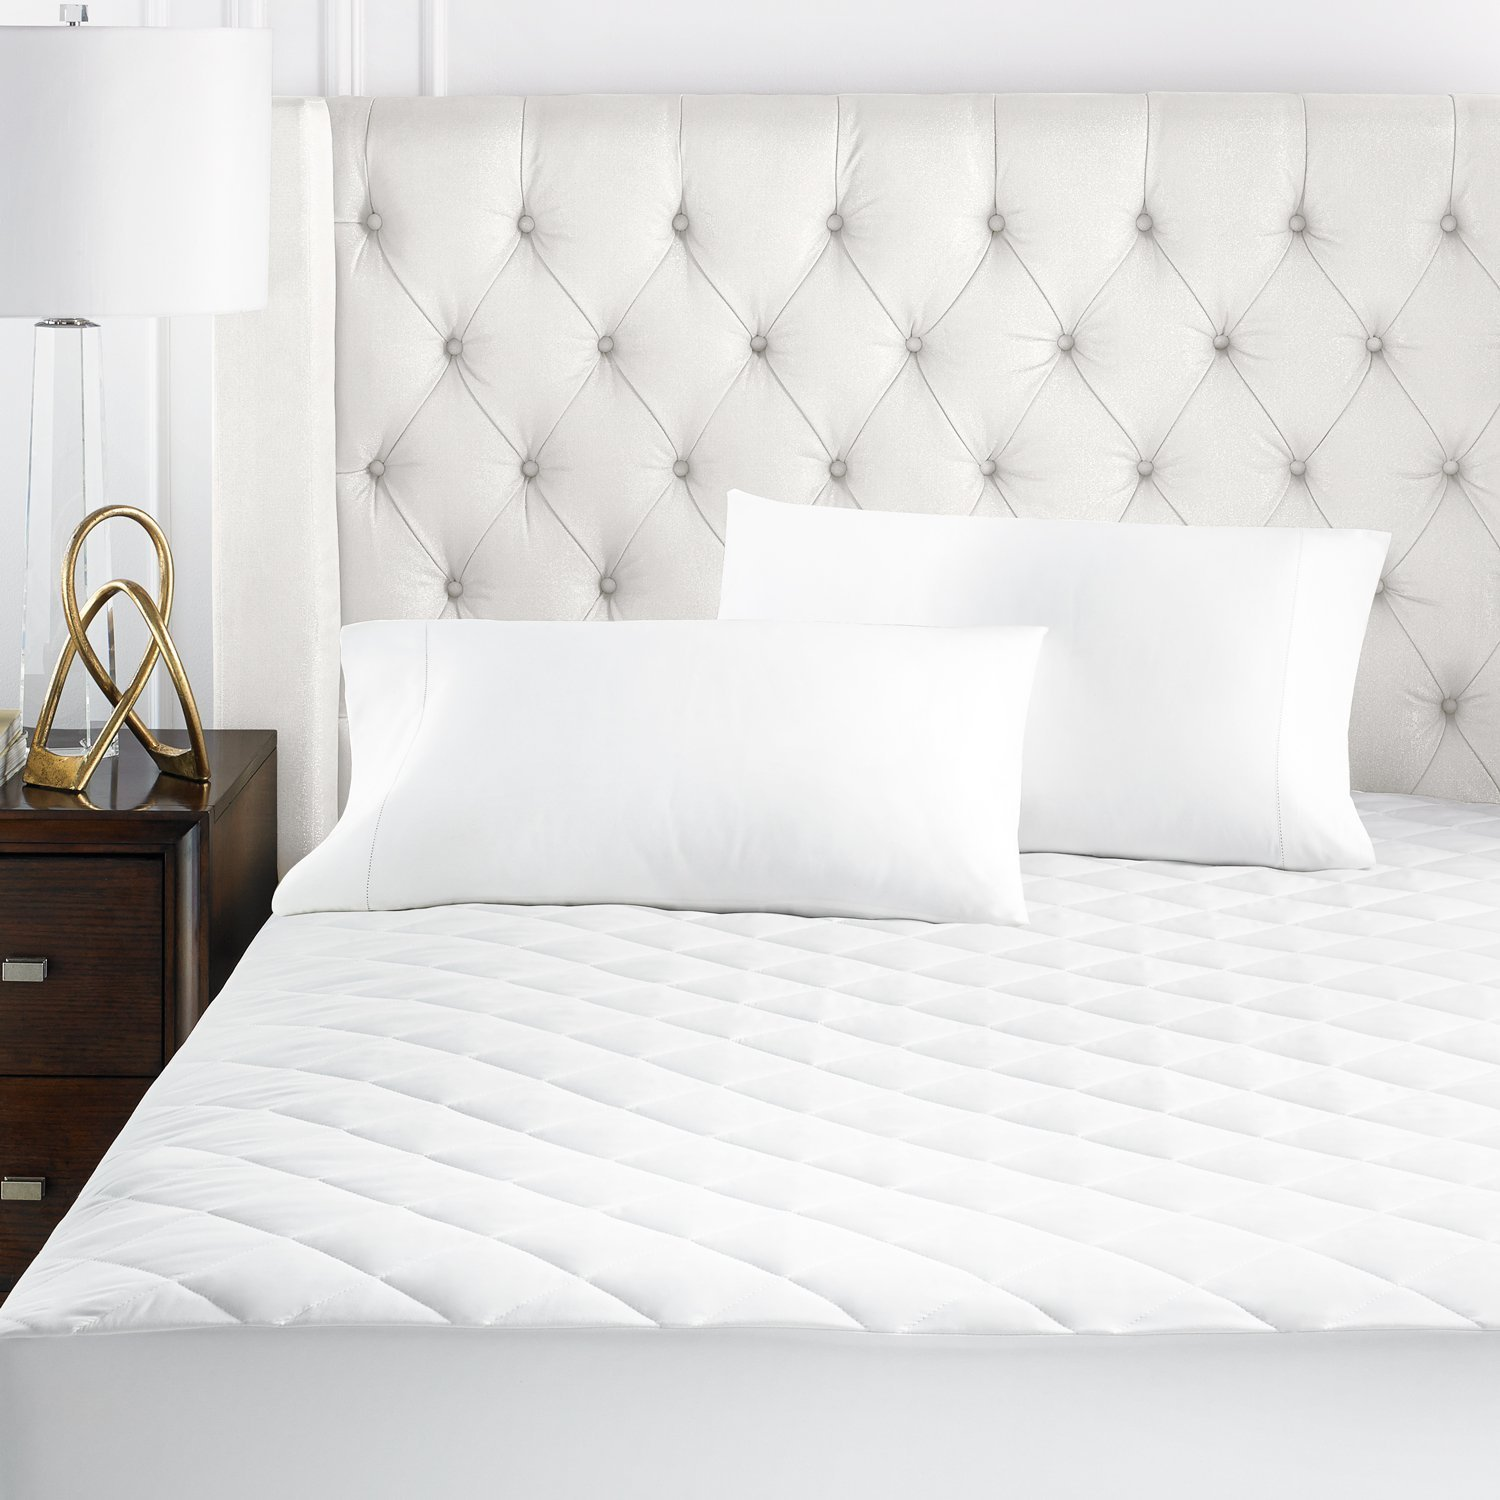 Beckham Hotel Collection Microfiber Mattress Pad - Quilted, Hypoallergnic, and Water-Resistant - Cal King